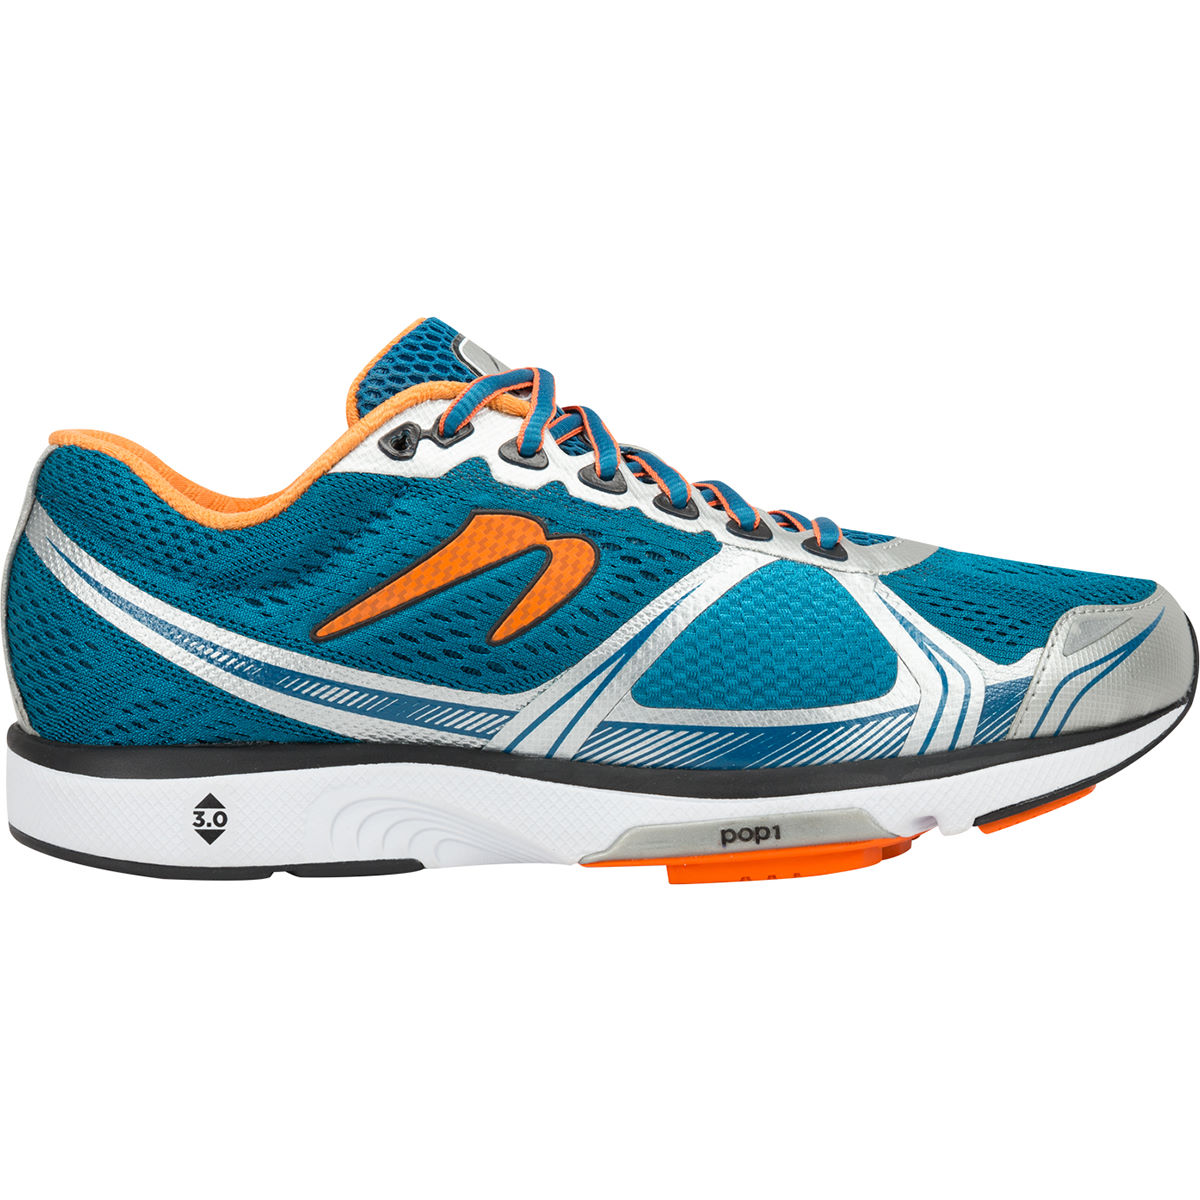 Chaussures Newton Running Shoes Motion VI - 7 UK Bleu